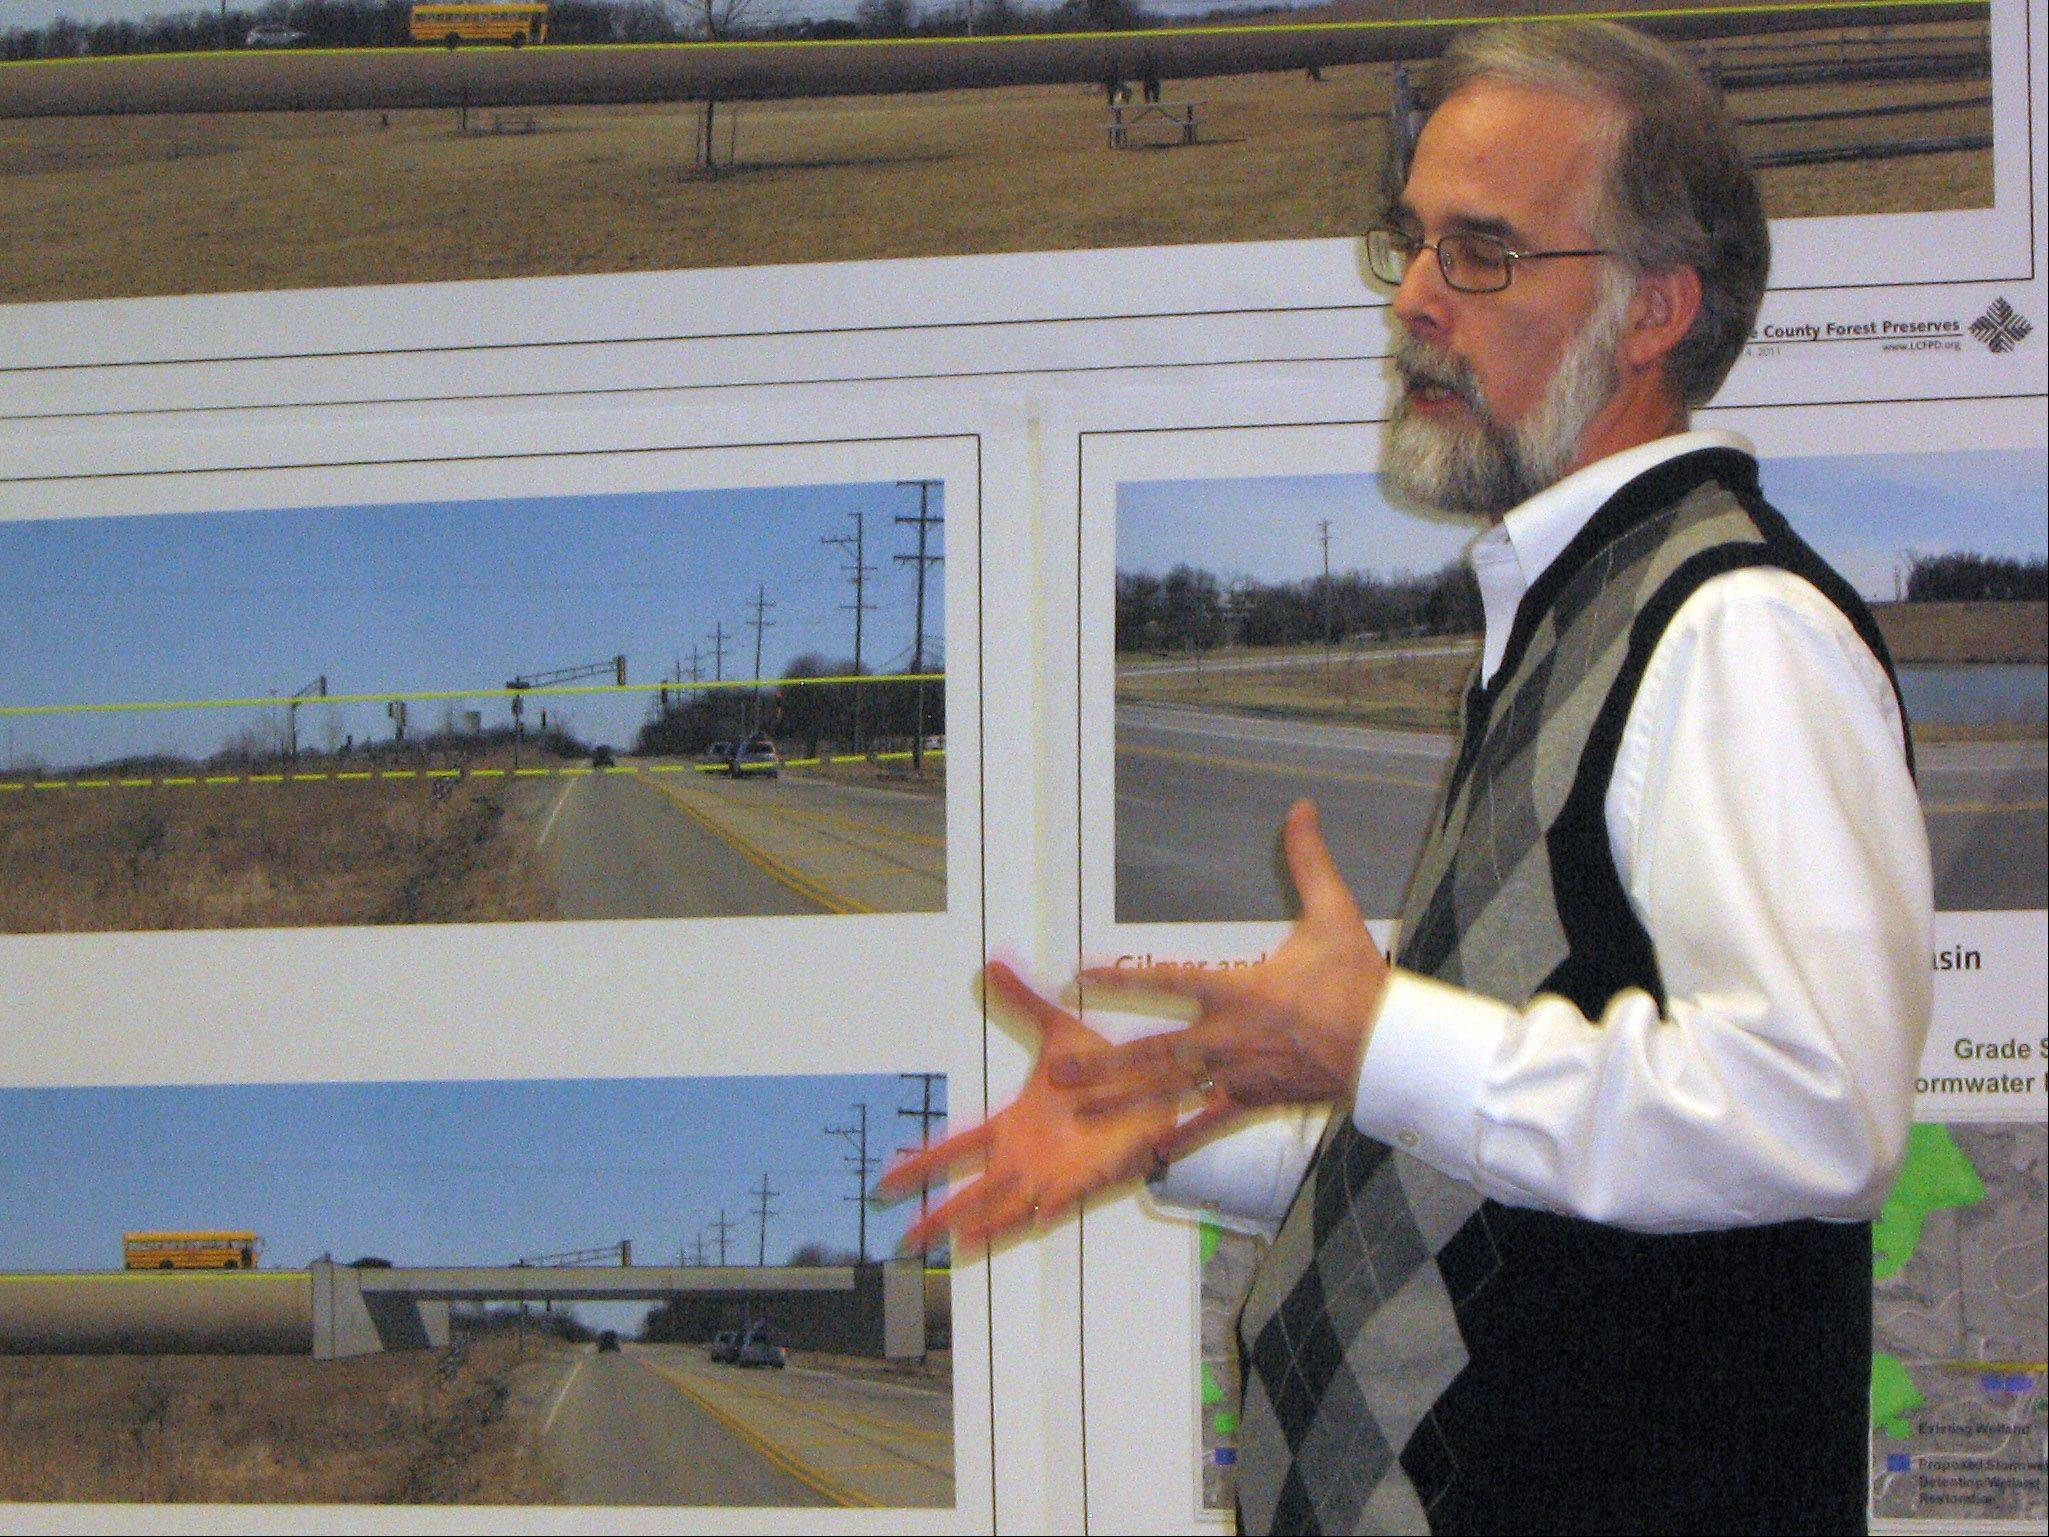 MICK ZAWISLAK/Daily Herald file photoMike Fenelon, the head of planning, conservation and development for the Lake County Forest Preserve District, helped design public improvements at many of the county's preserves.